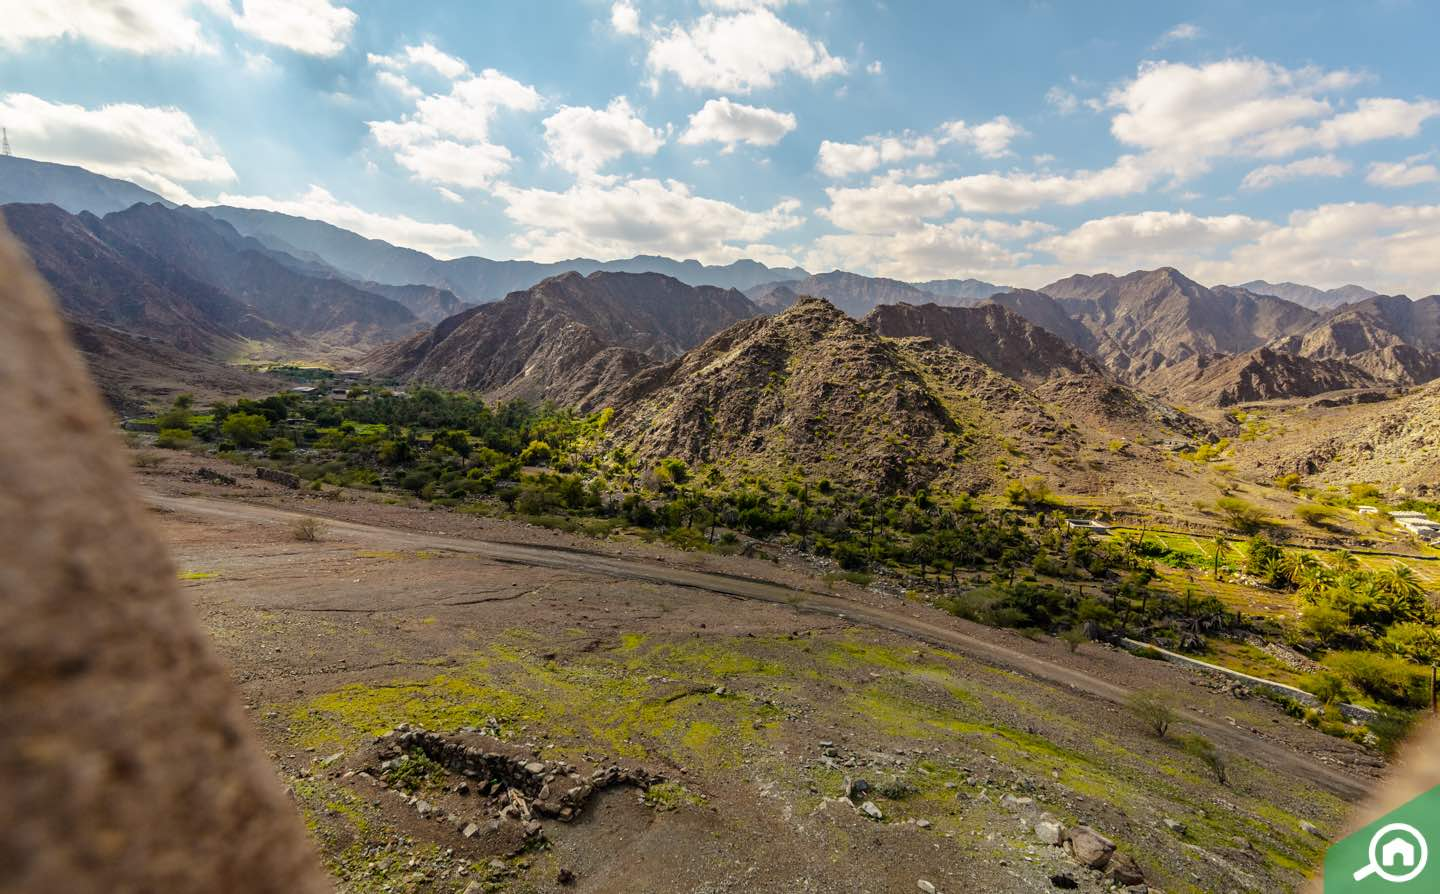 View from one of the towers at Al Hayl Castle, one of the attractions in Fujairah